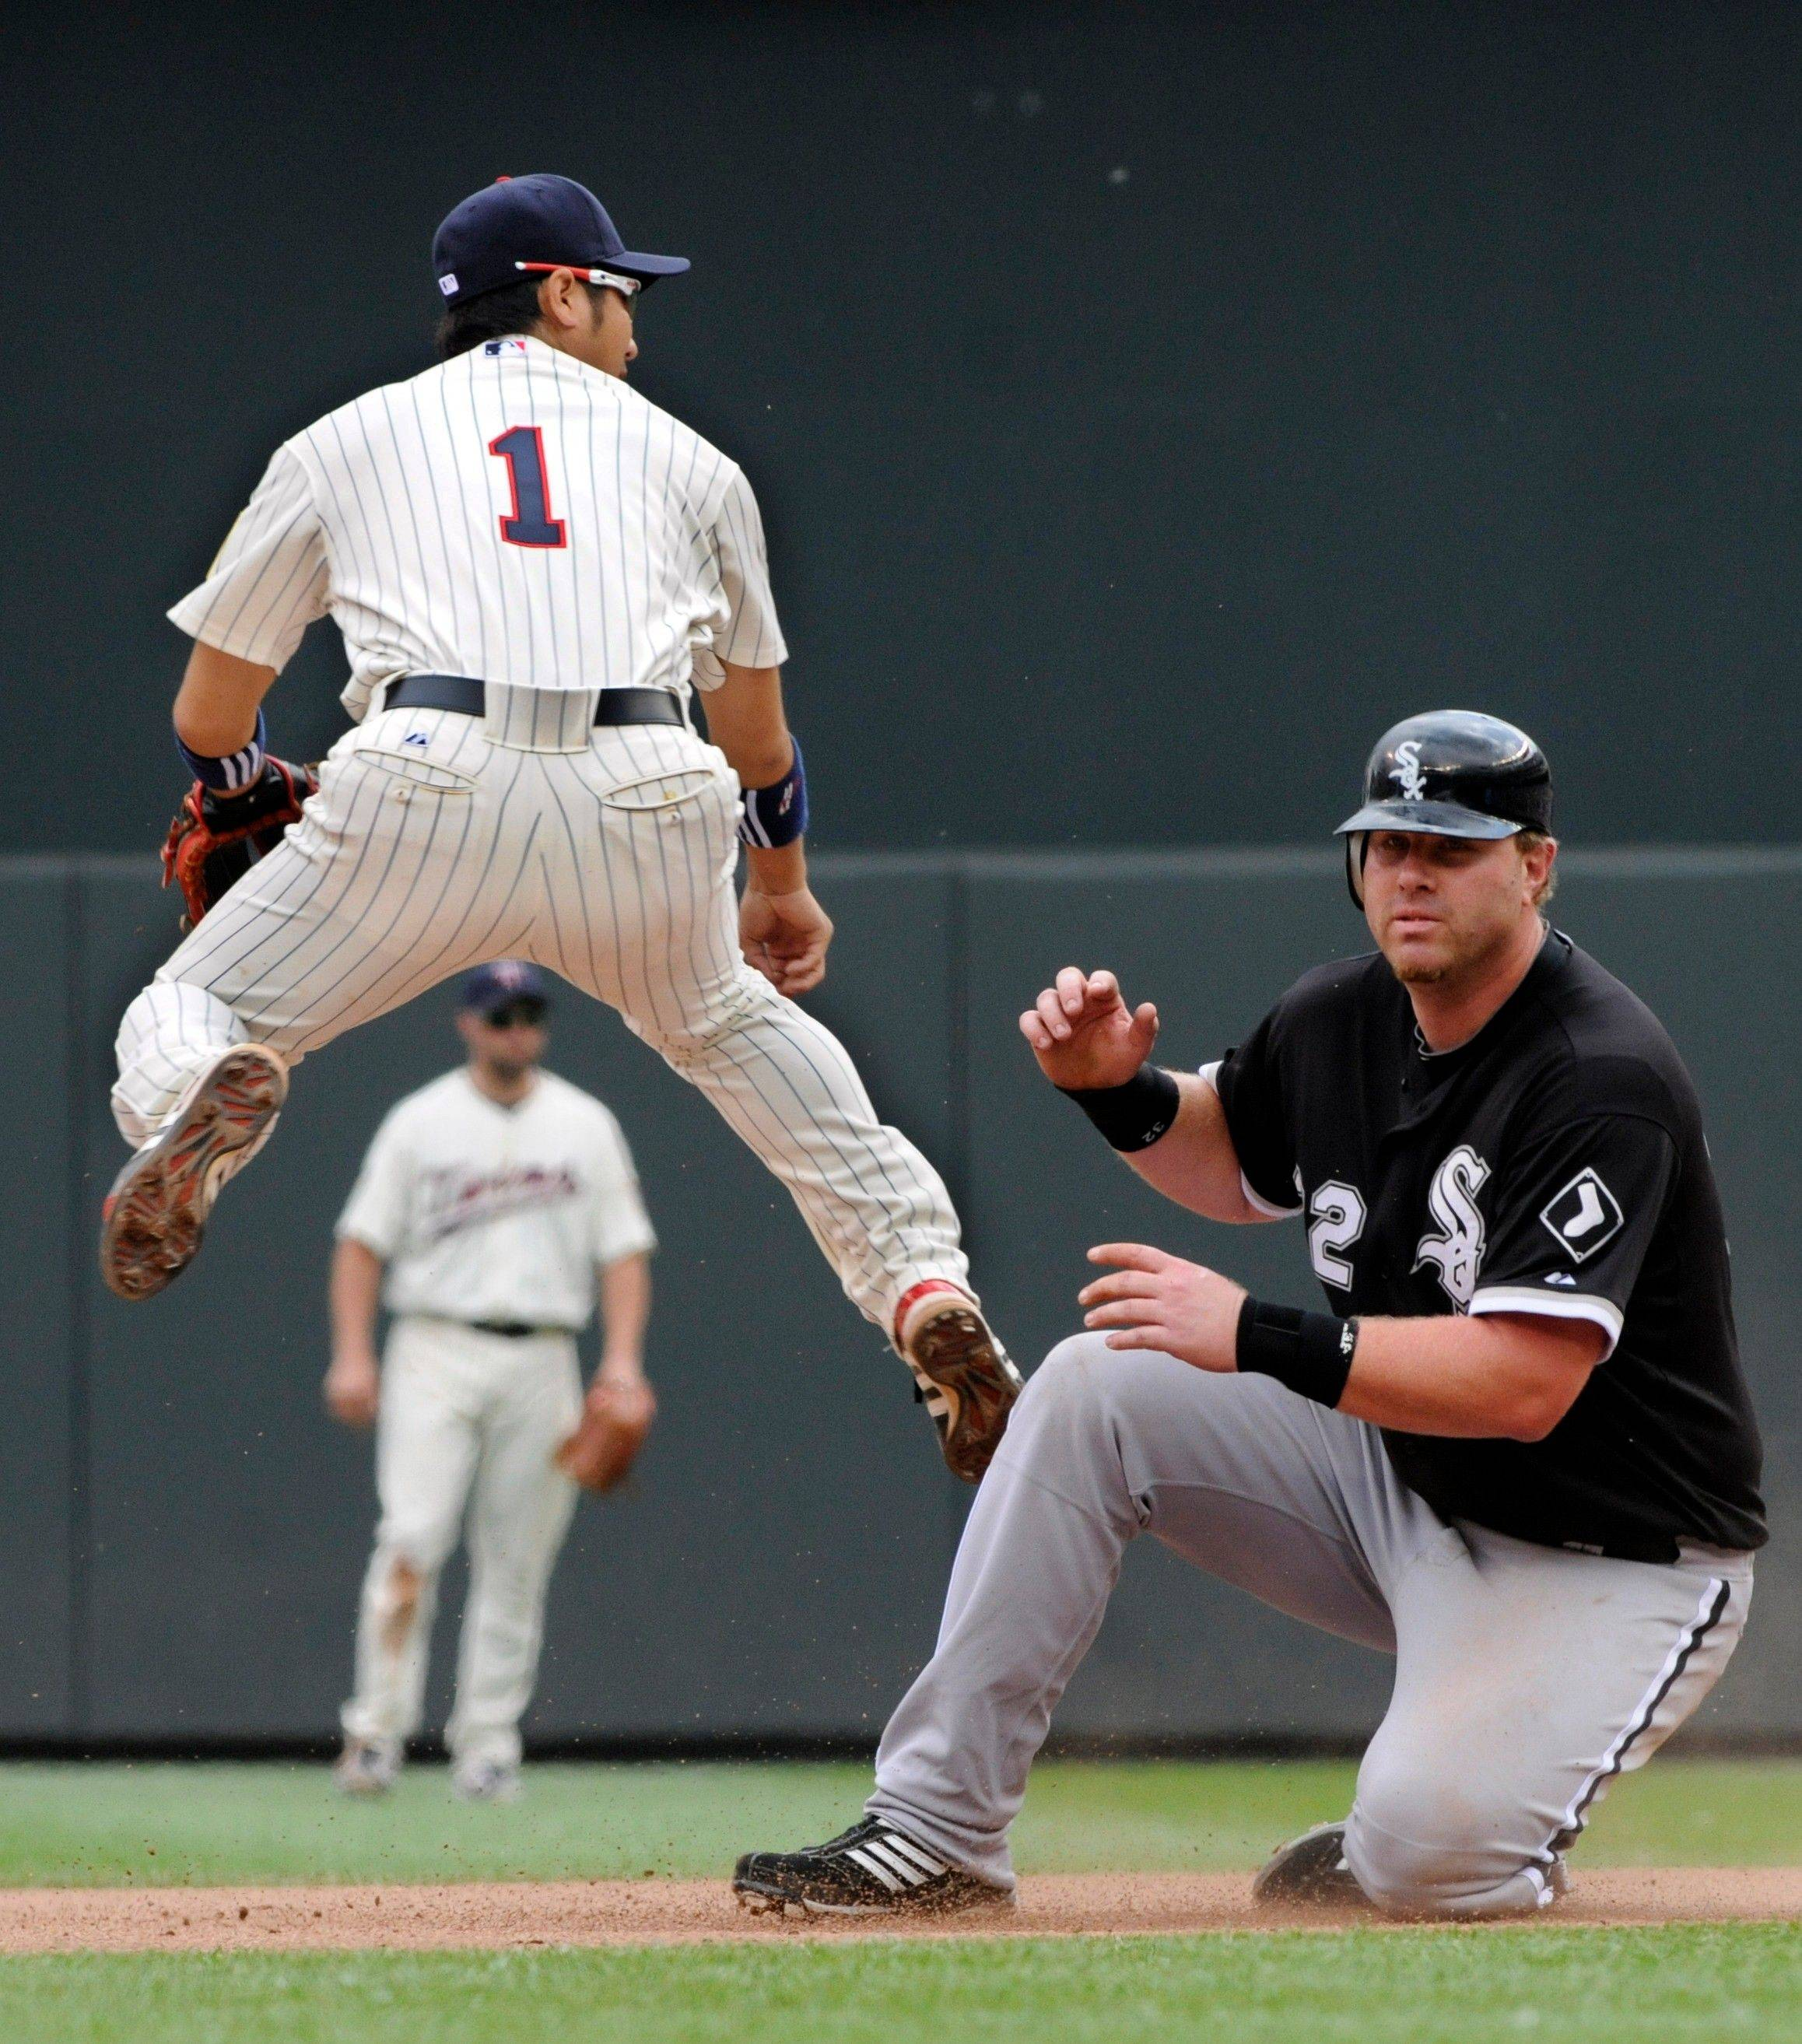 Twins shortstop Tsuyoshi Nishioka completes the double play after a force at second on Adam Dunn of the White Sox during the eighth inning Thursday. Gordon Beckham hit into the double play as the Twins won 1-0.